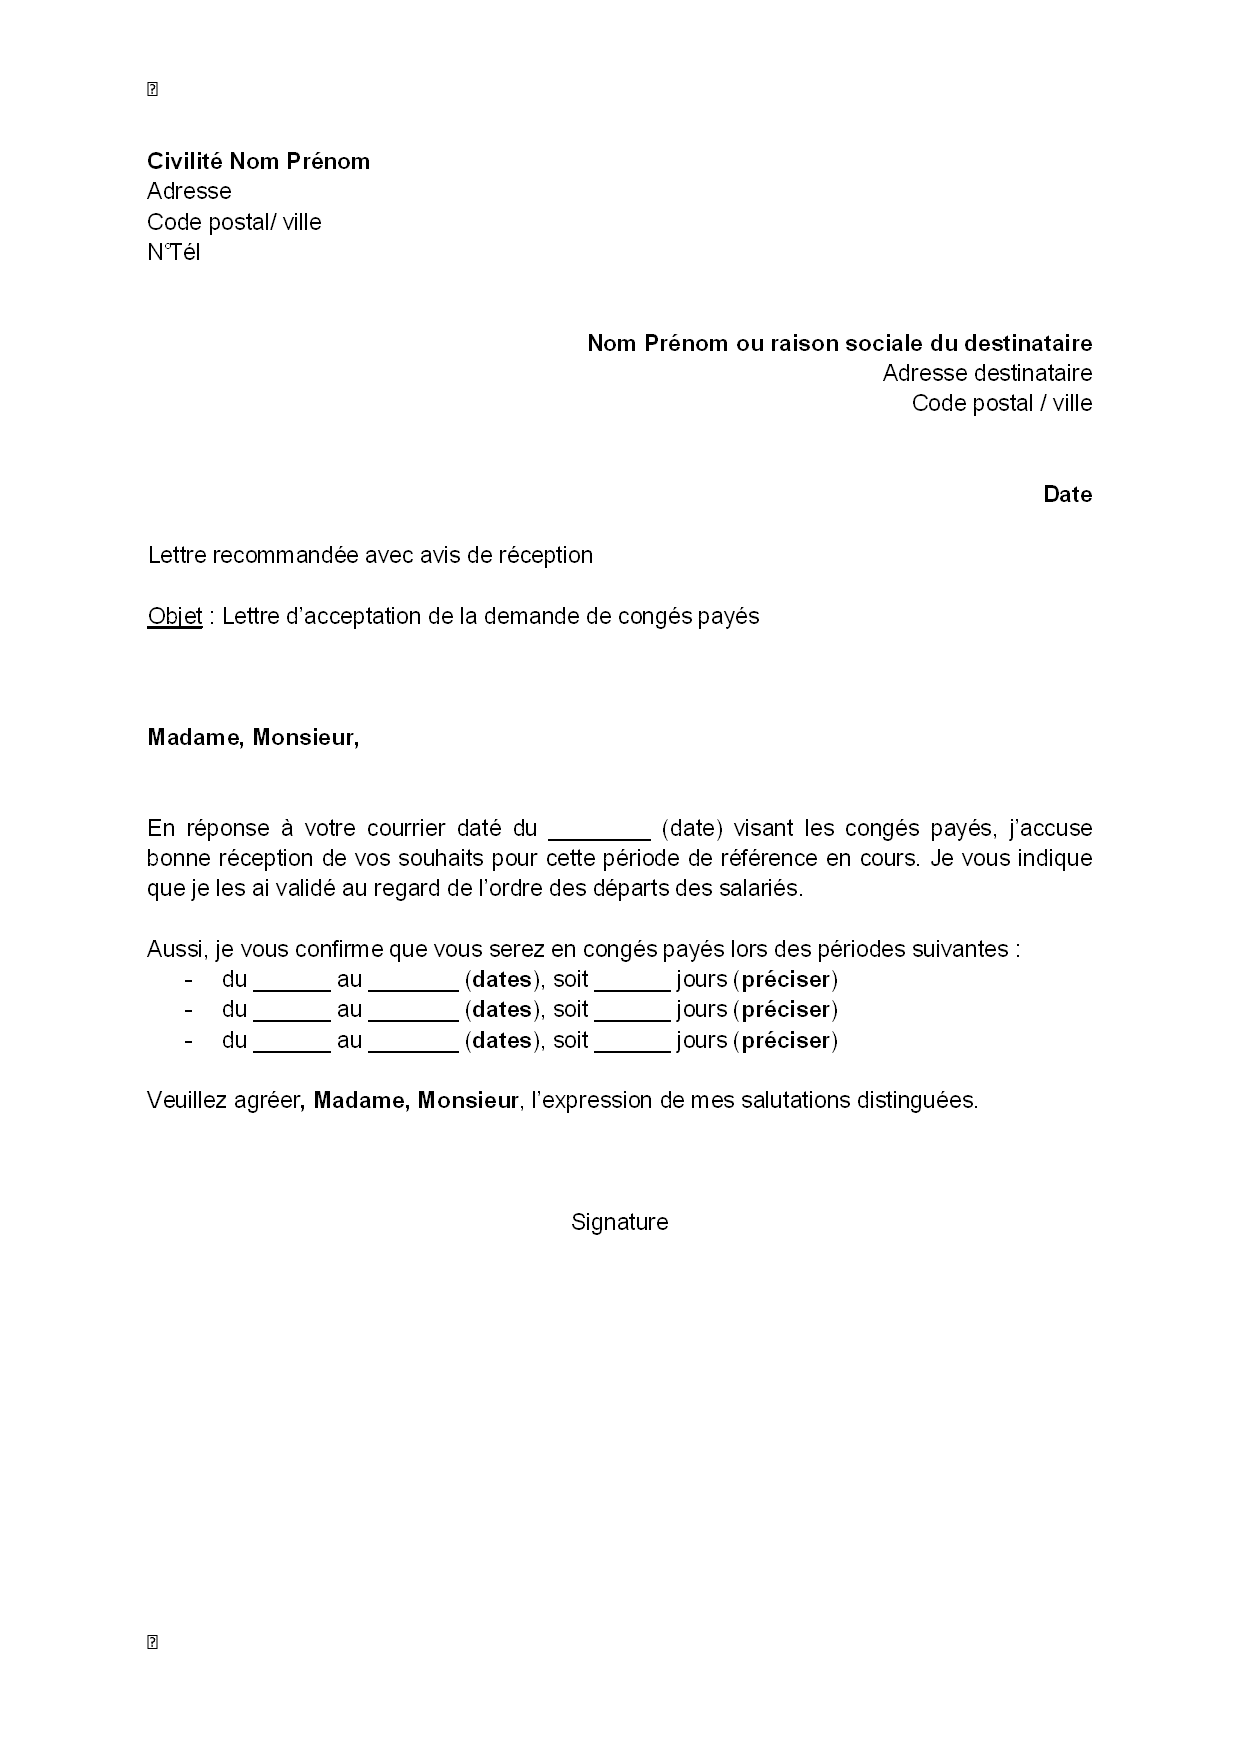 Cuisine amenagee rapport qualite prix dijon devis for Tarif cuisine amenagee